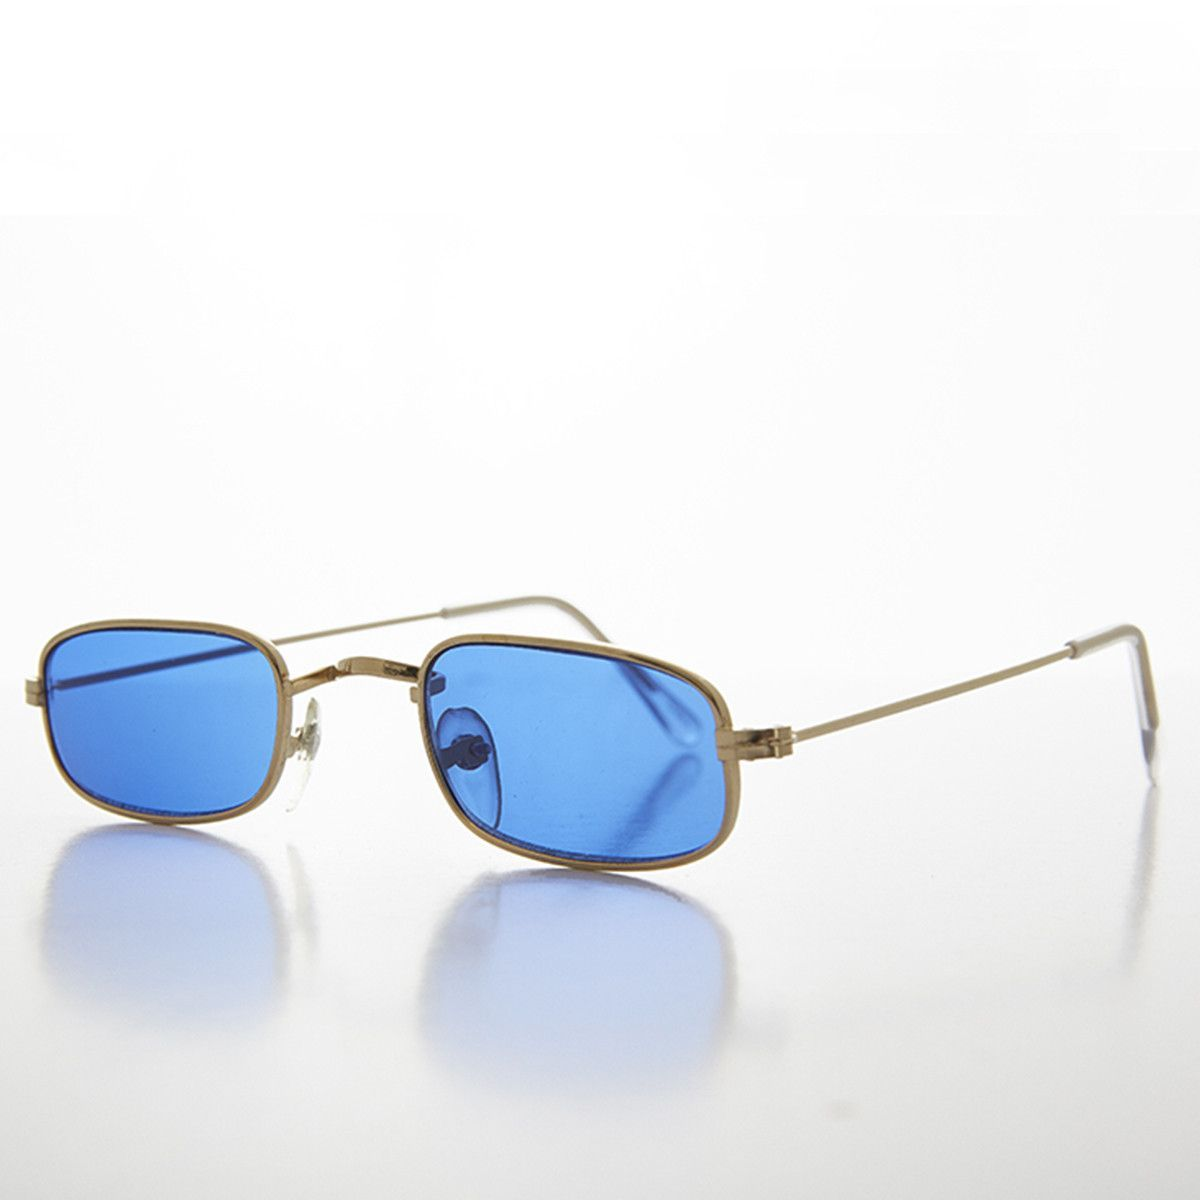 df902d9628 Rectangle Color Tinted Lens Hippy Vintage Sunglasses - Hulu ...